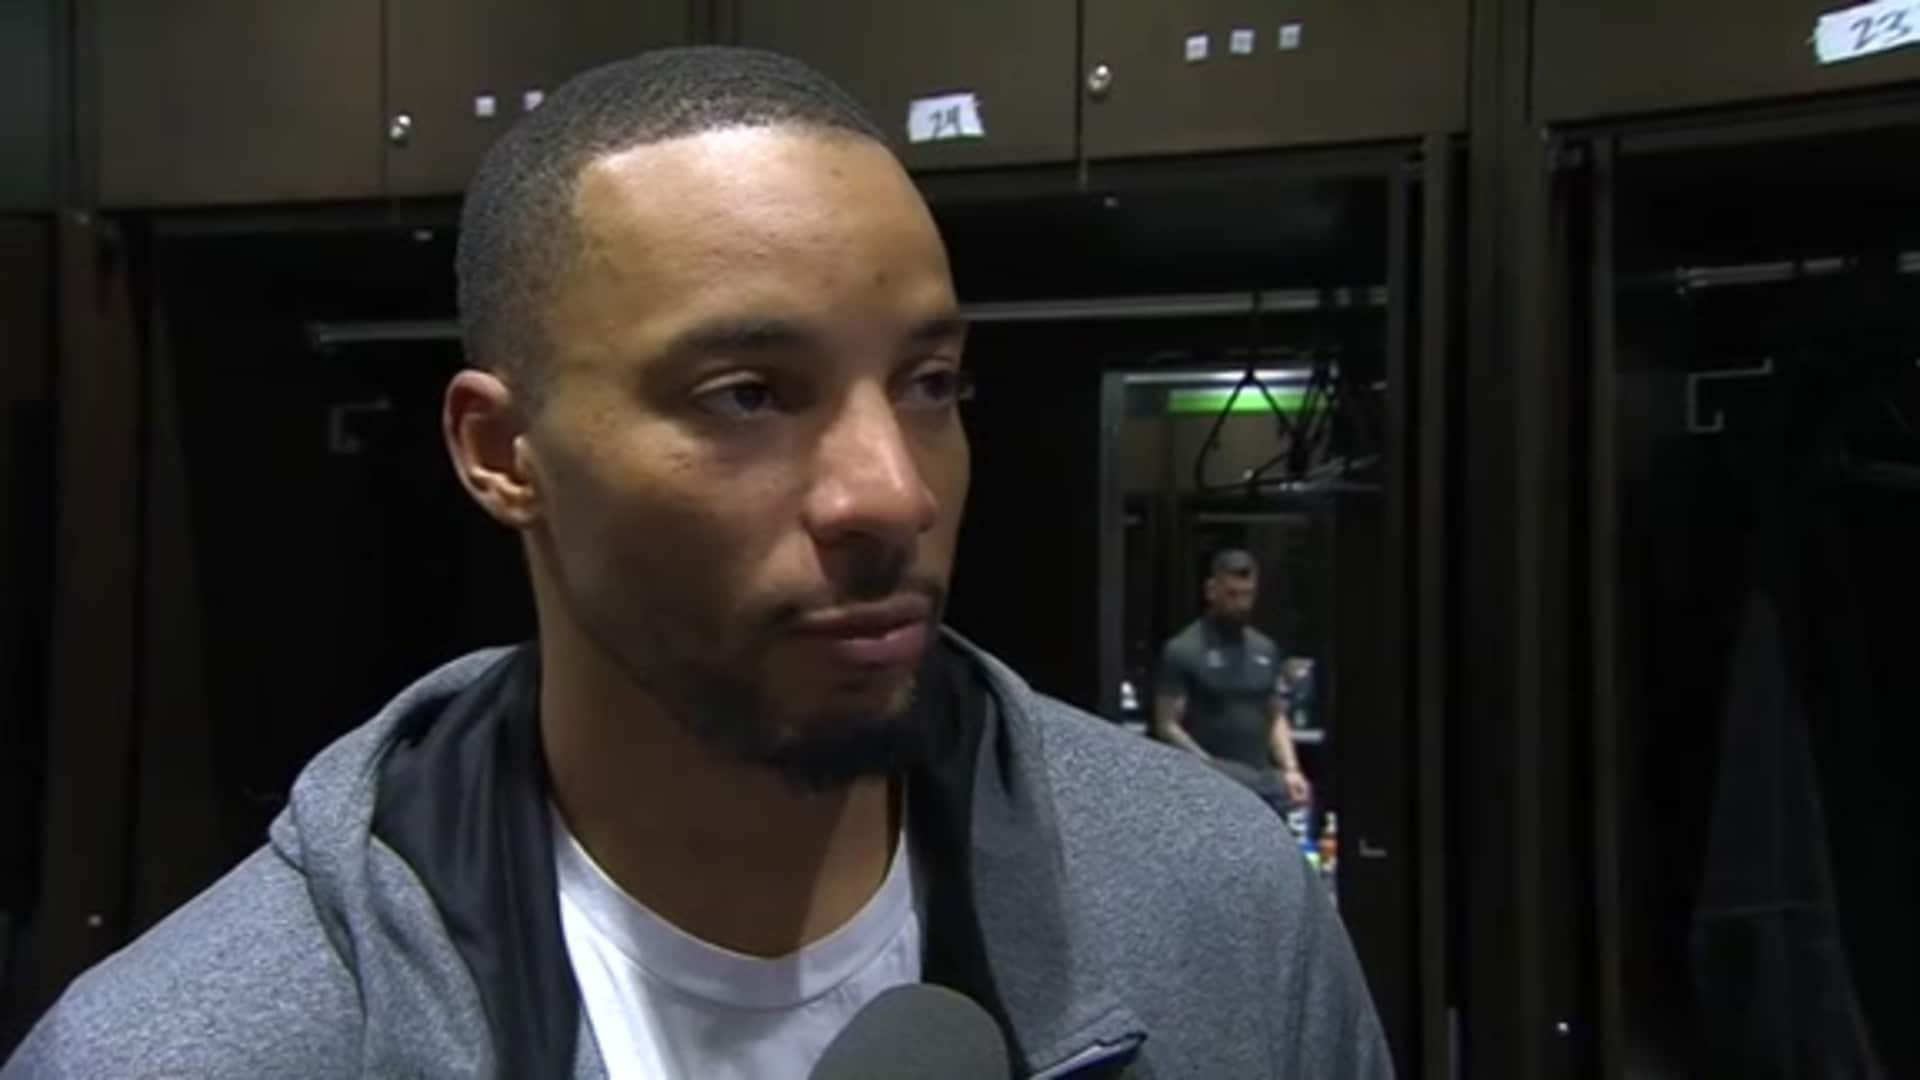 Raptors Post Game: Norman Powell - January 18, 2020